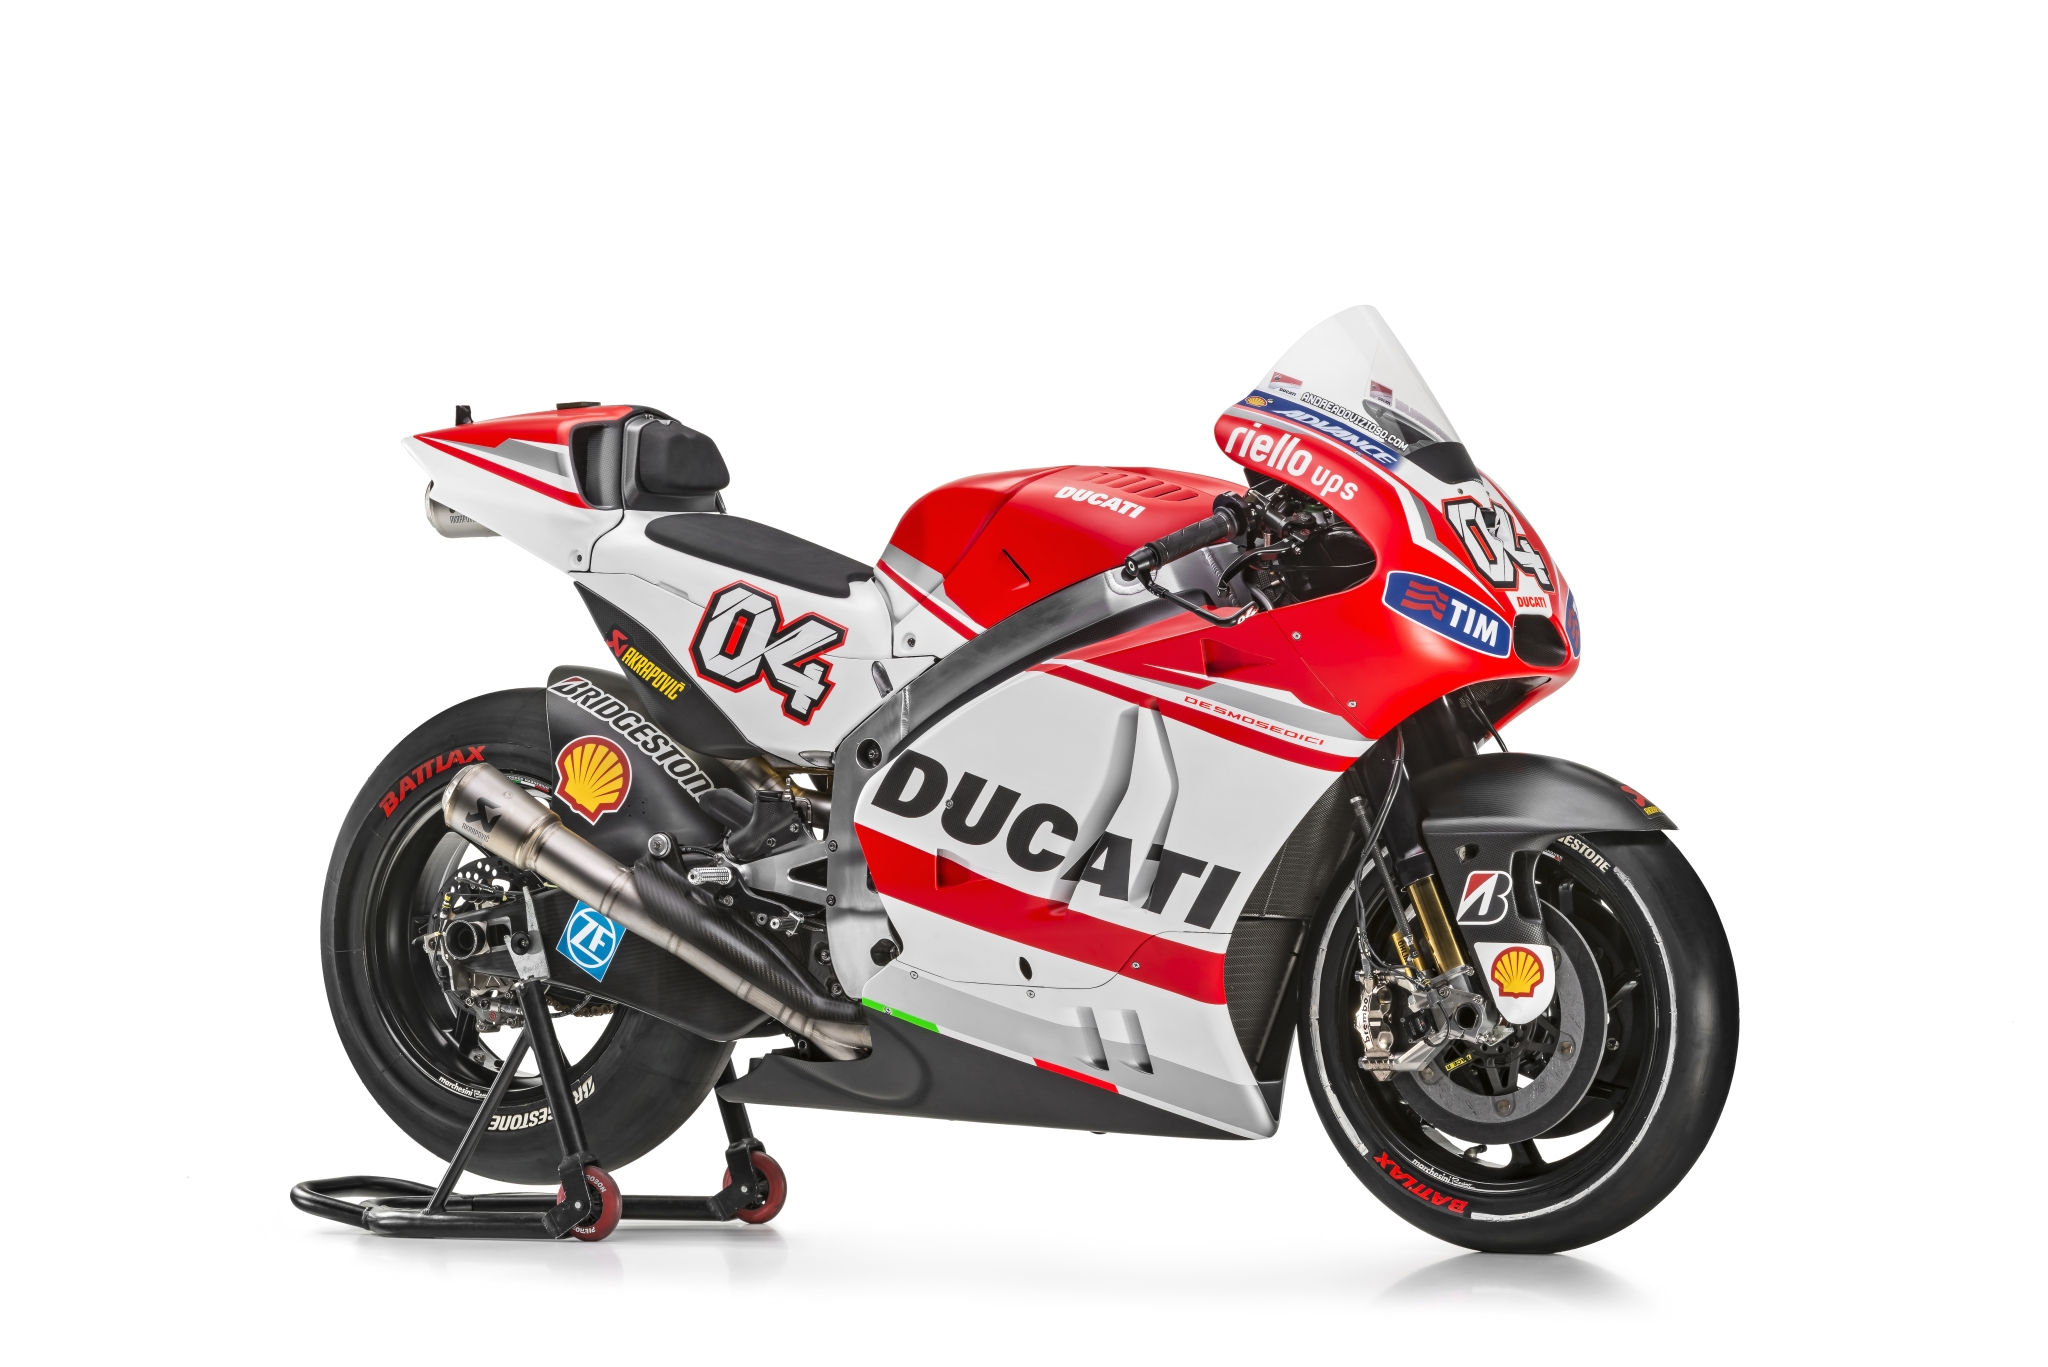 2014 Ducati MotoGP Bikes in Sizzling Hot Pictorial - autoevolution